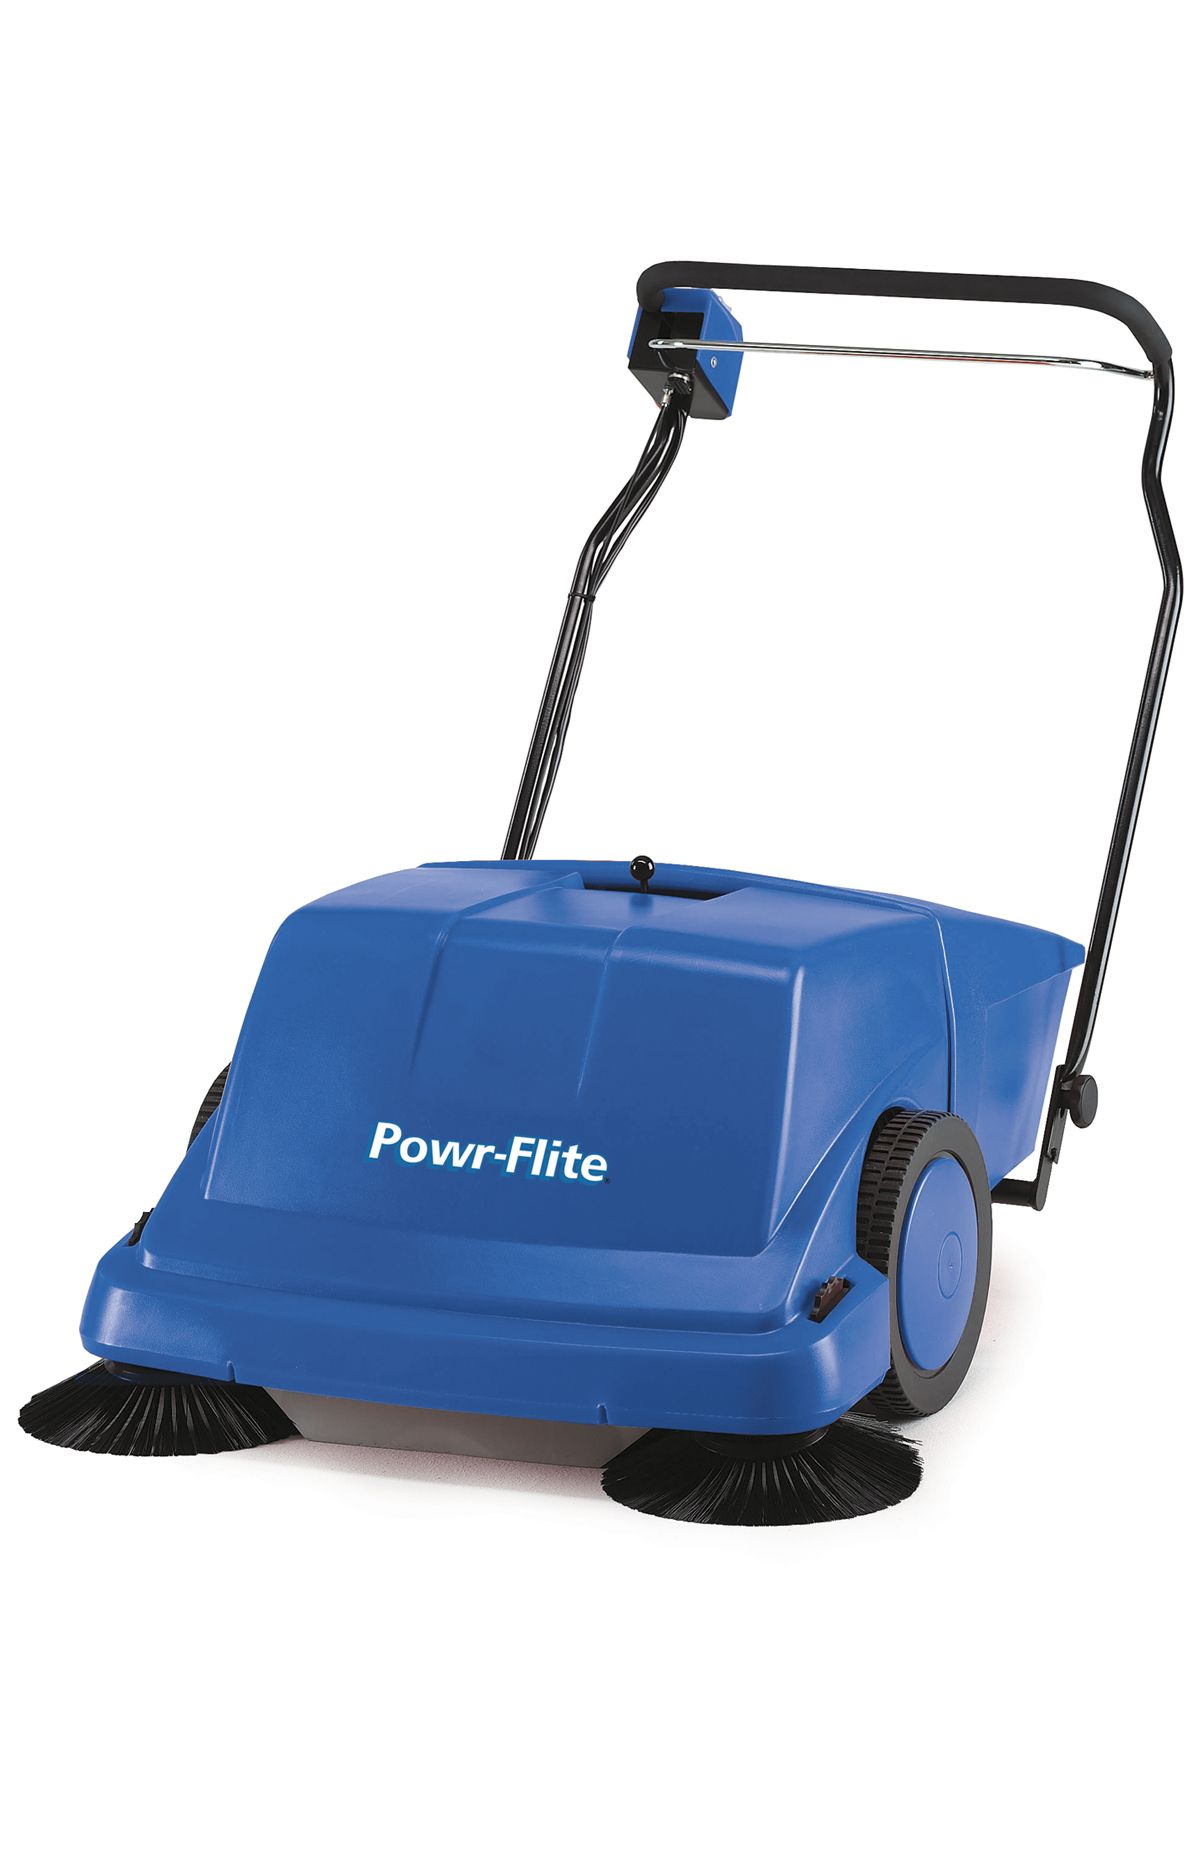 Powr-Flite 36 Inch Battery Powered Self Propelled Sweeper